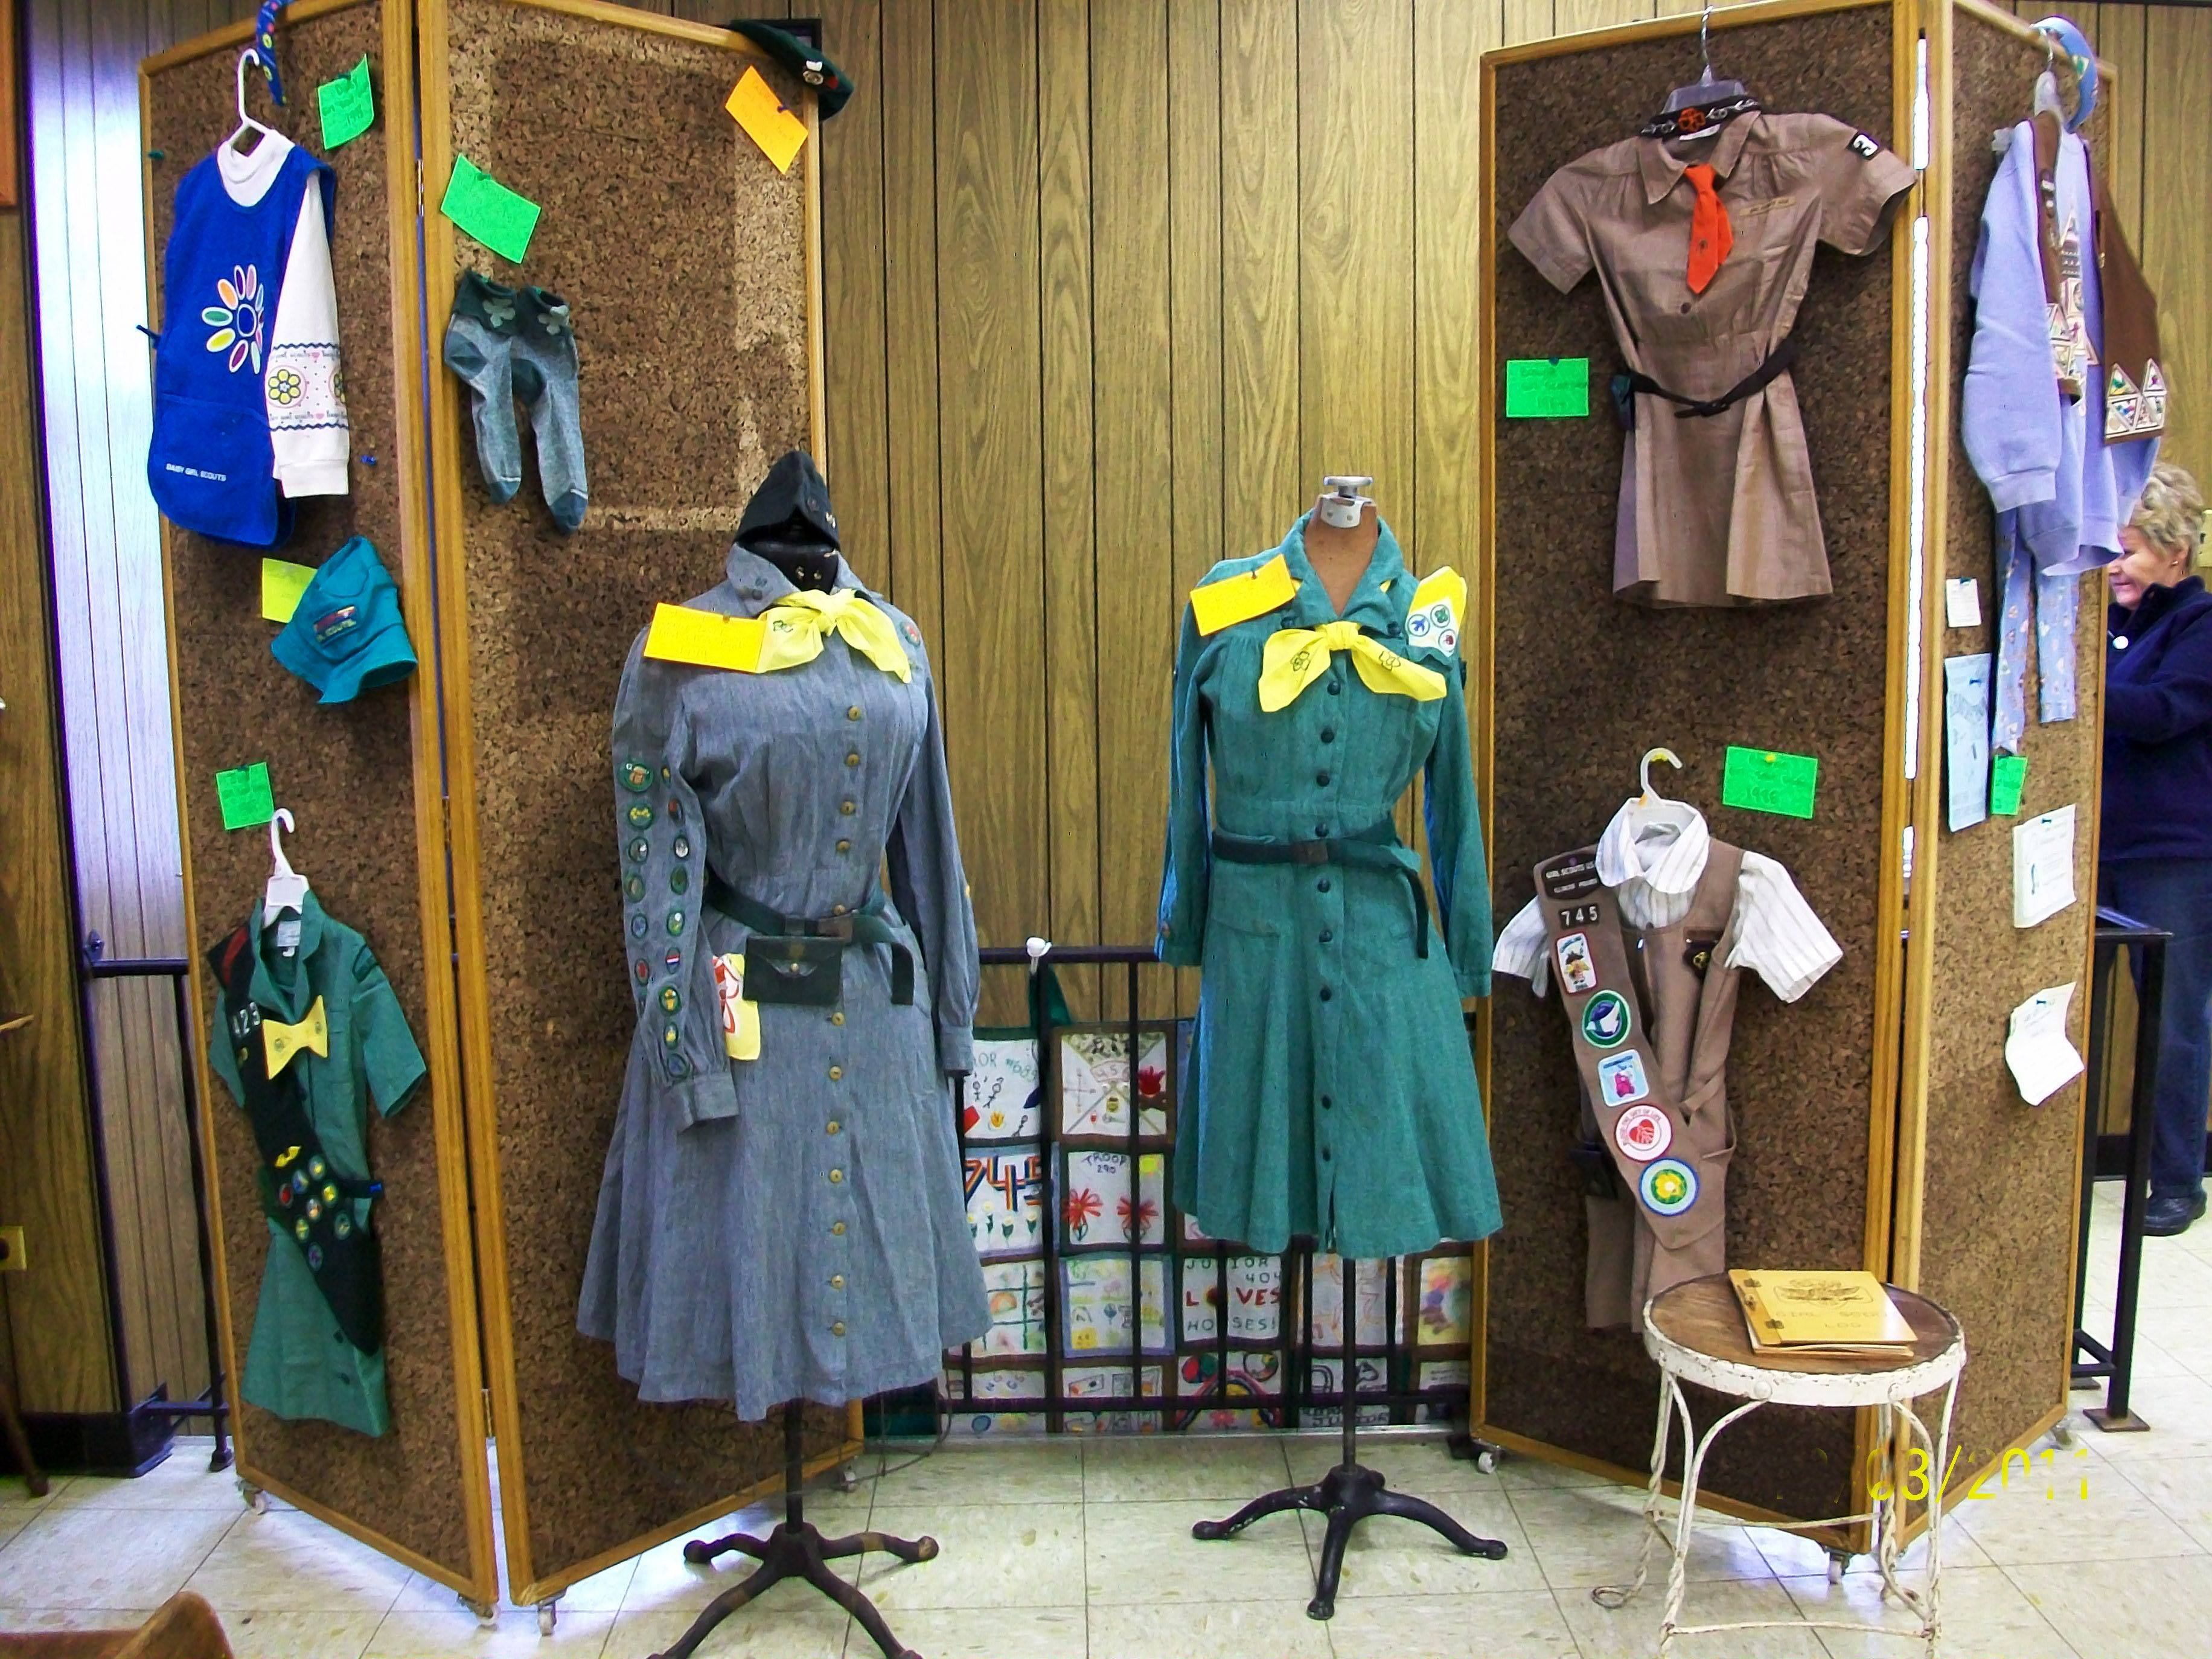 Girl Scout uniforms, badges, projects and memorabilia from the past are part of a display at the Ela Historical Society and Museum. The Girl Scouts will be celebrating 100 years in February.